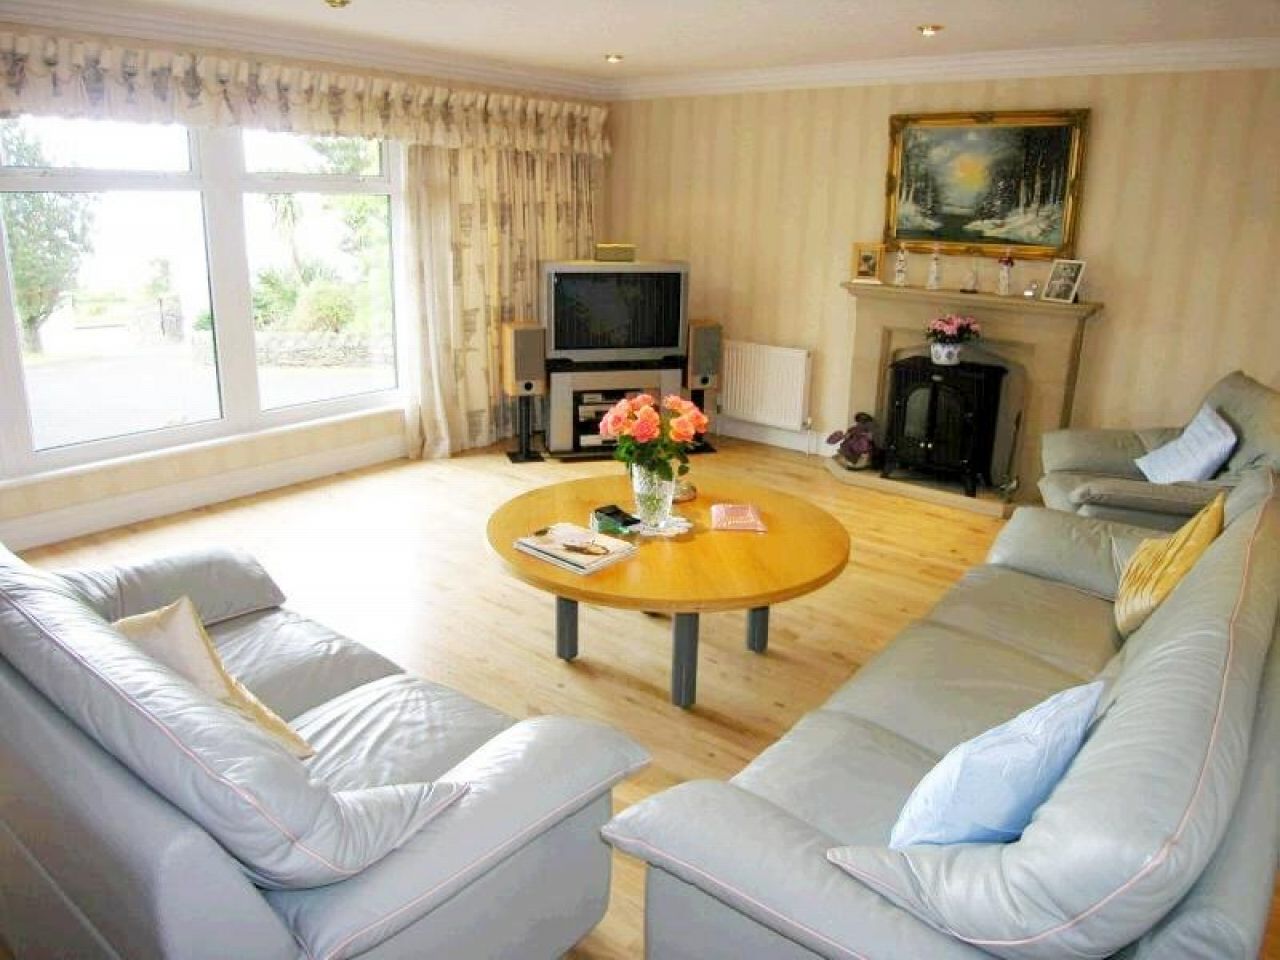 4 bedroom detached house For Sale in Laxey - 8